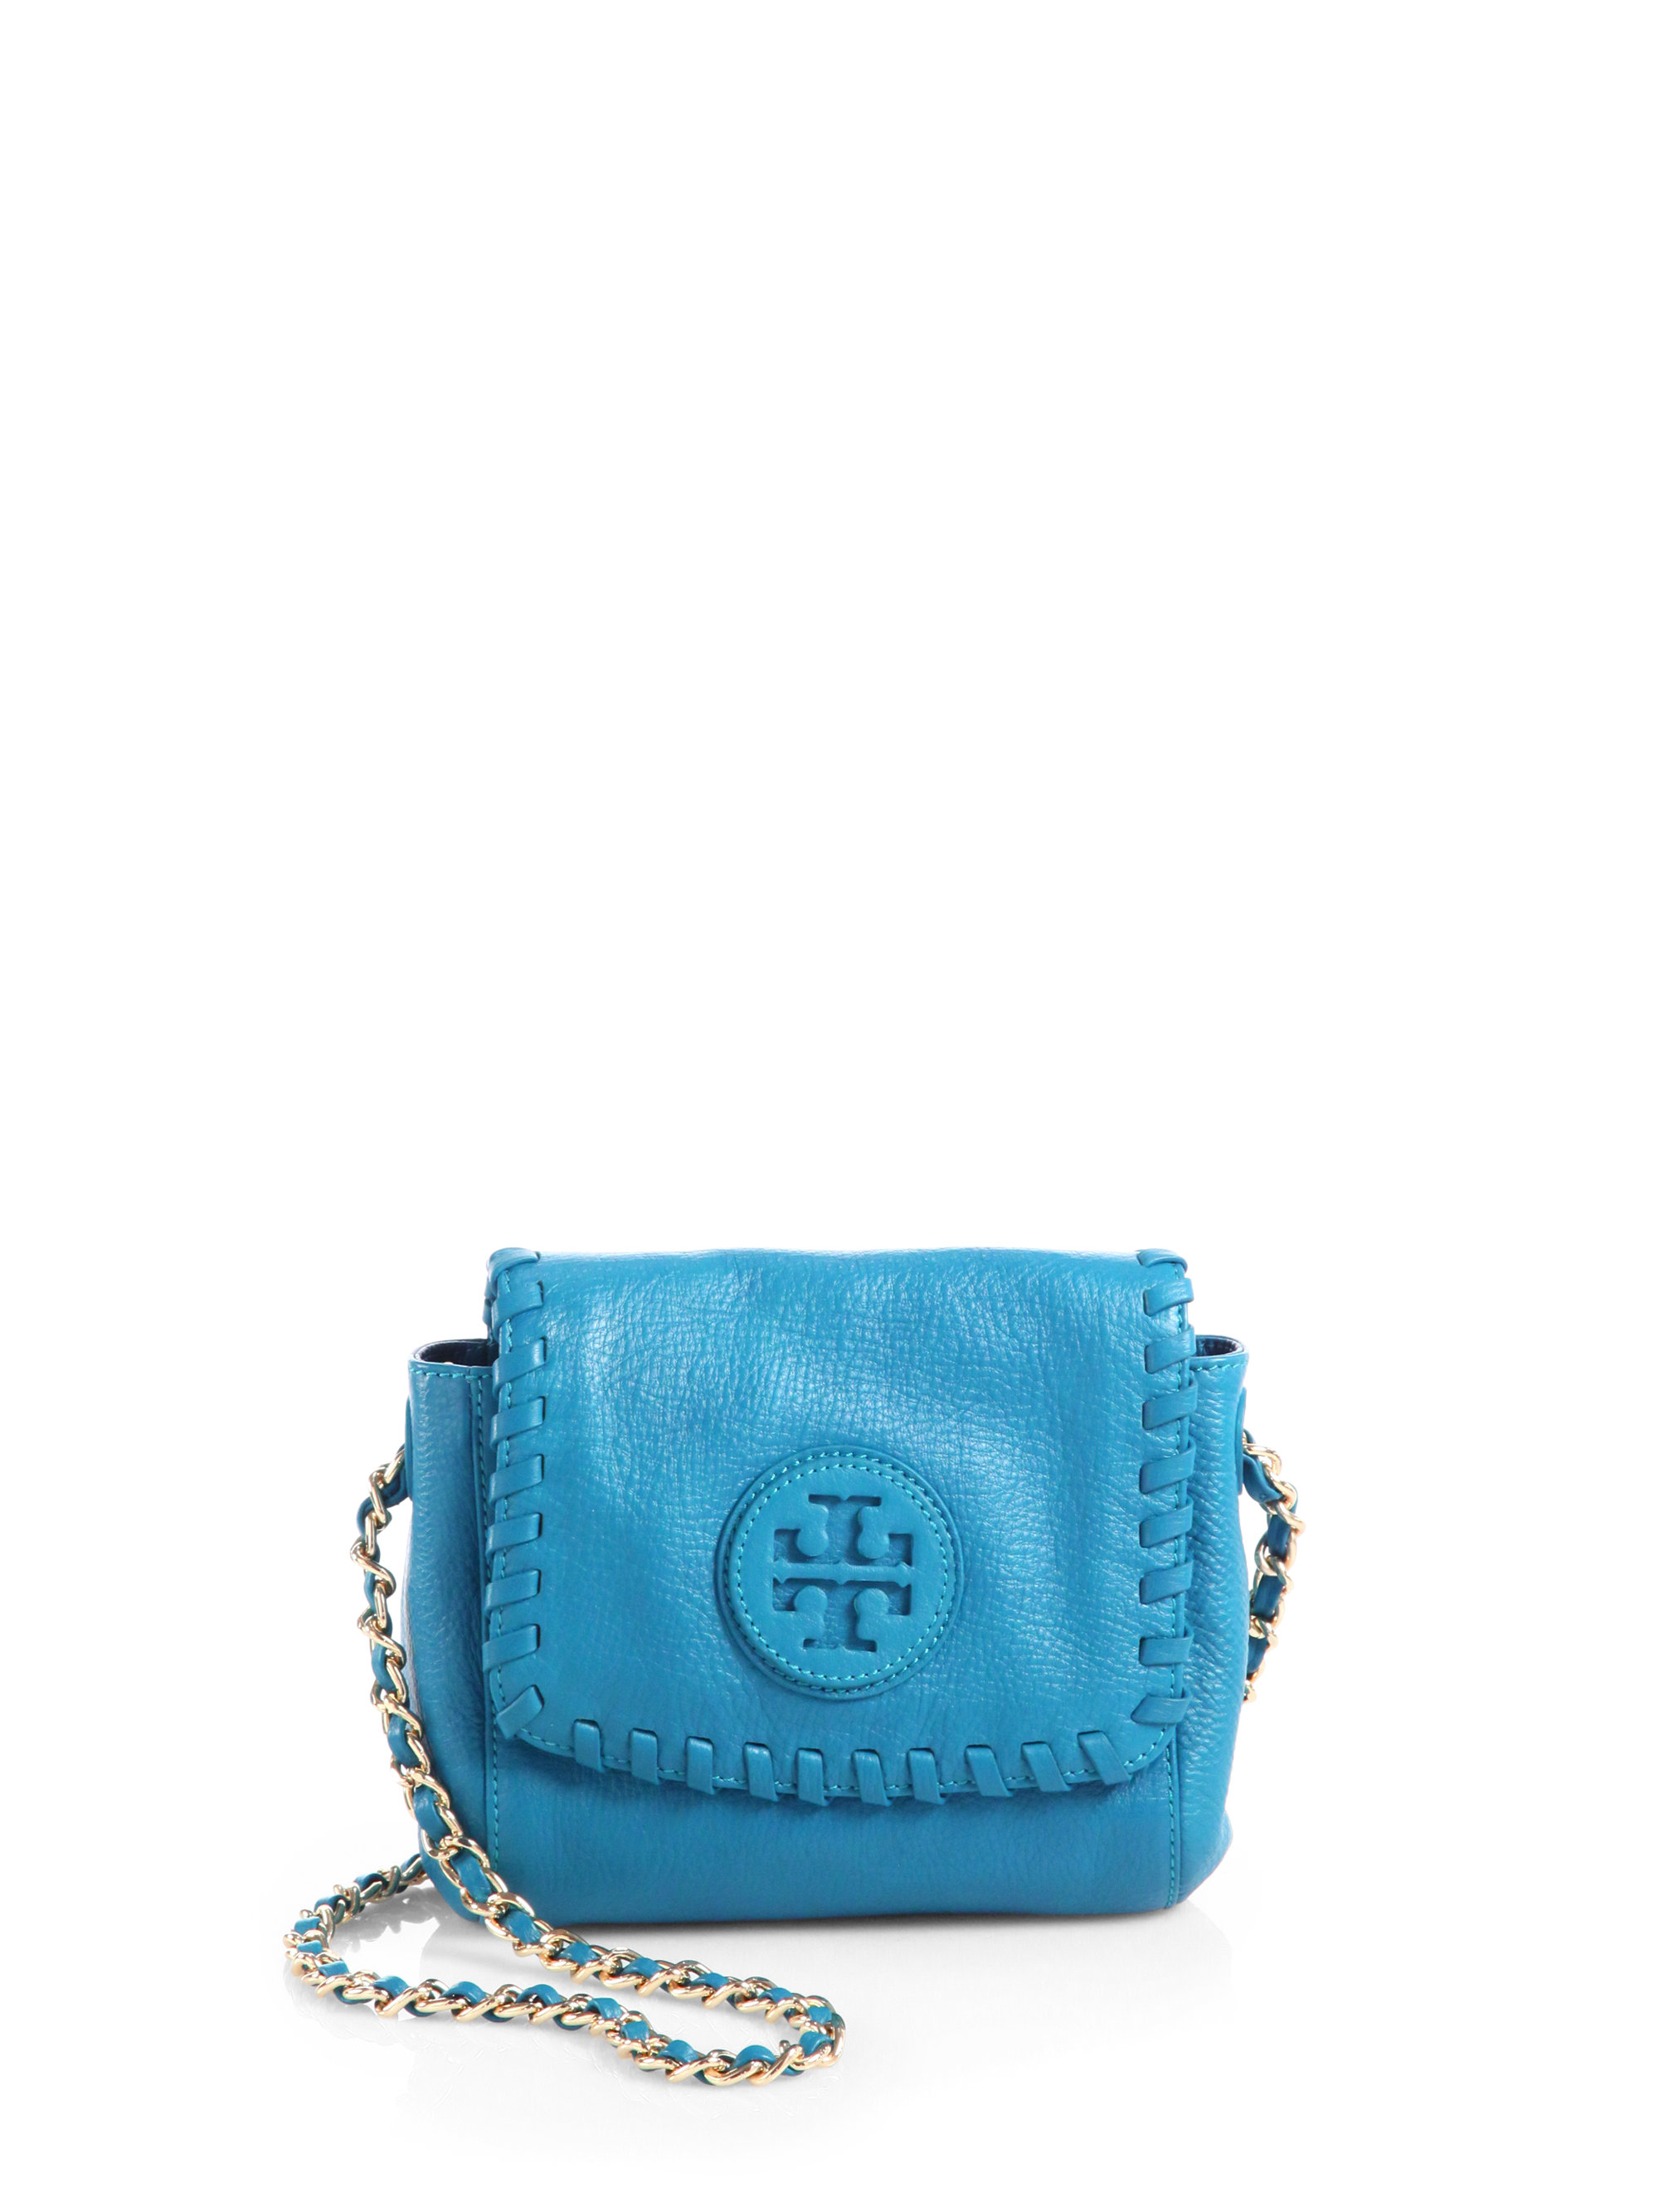 Tory Burch Marion Small Crossbody Bag In Blue Electric